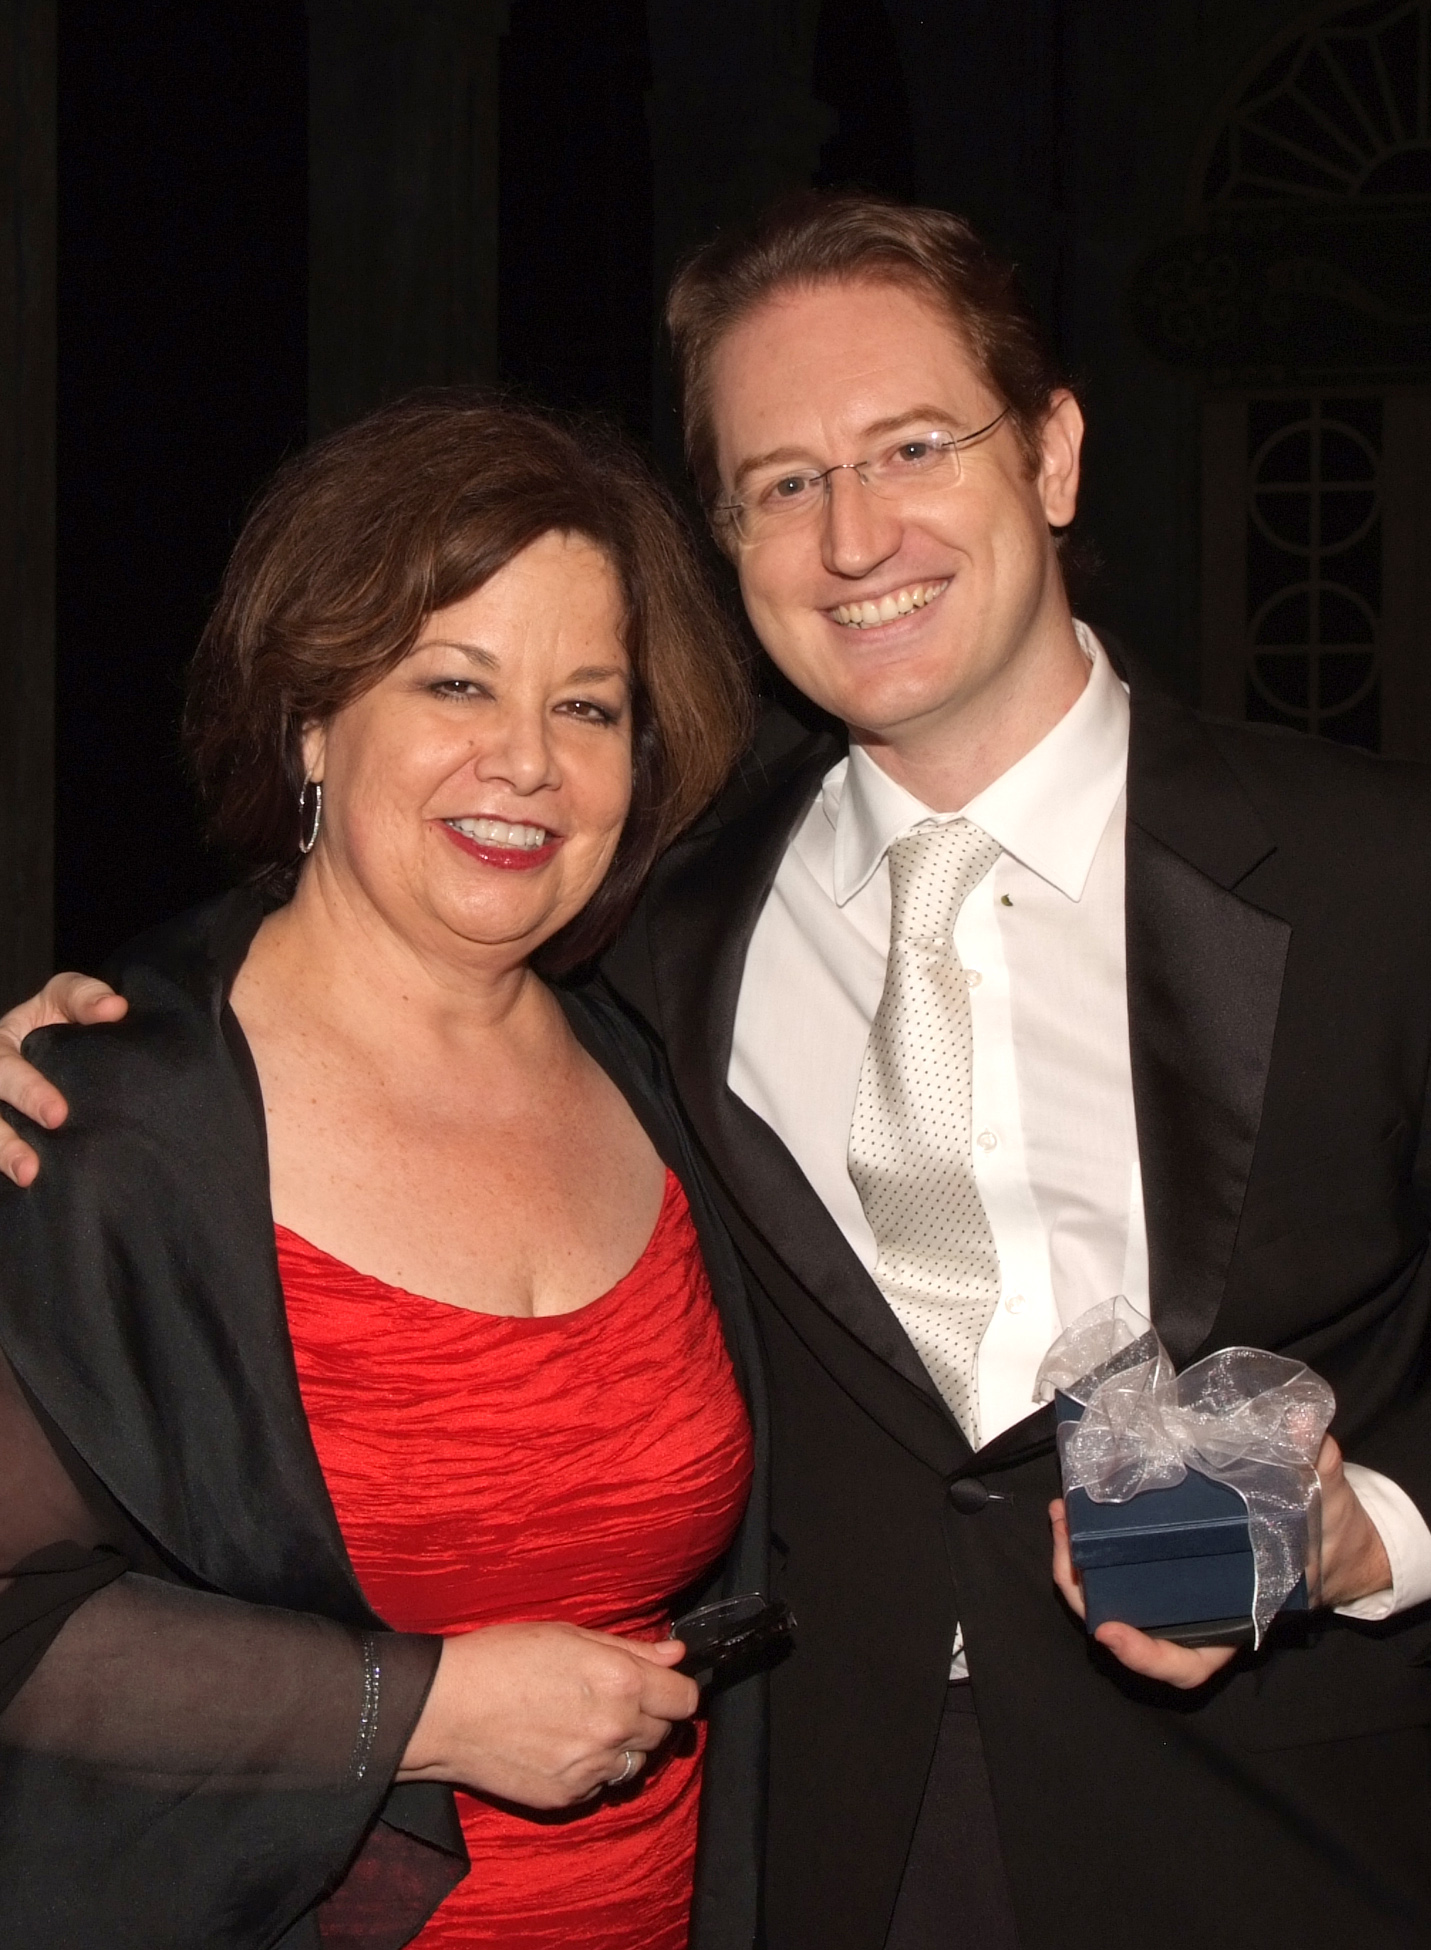 Florida Grand Opera&#39;s General Director and CEO, Susan T. Danis, with Maestro Ramon Tebar, FGO&#39;s Music Director and conductor of La boh&#232;me